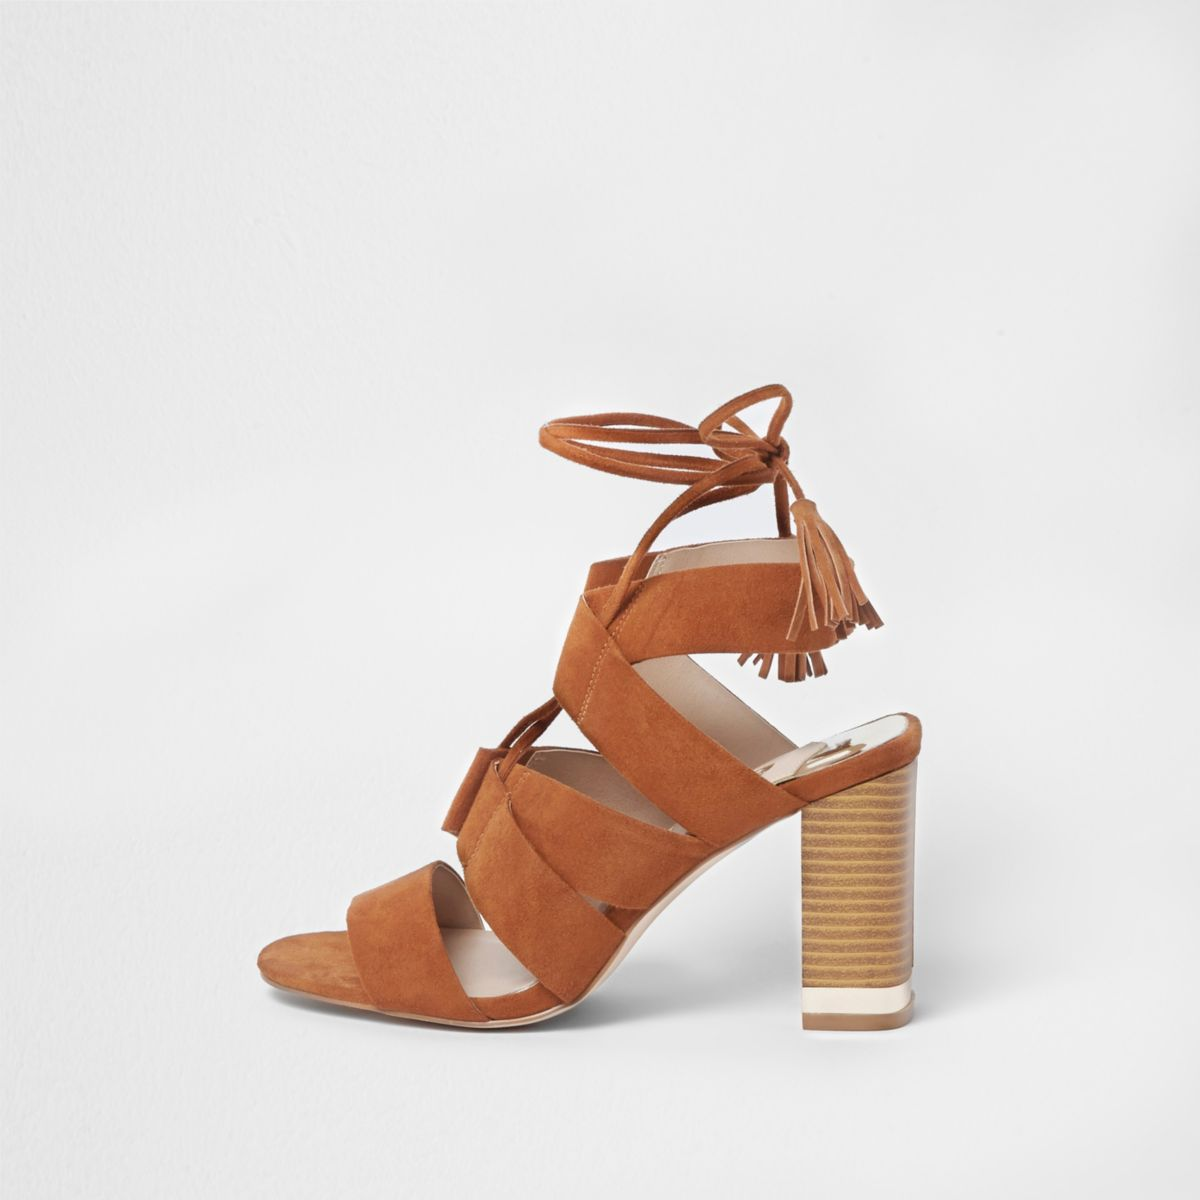 Tan tie up block heel sandals